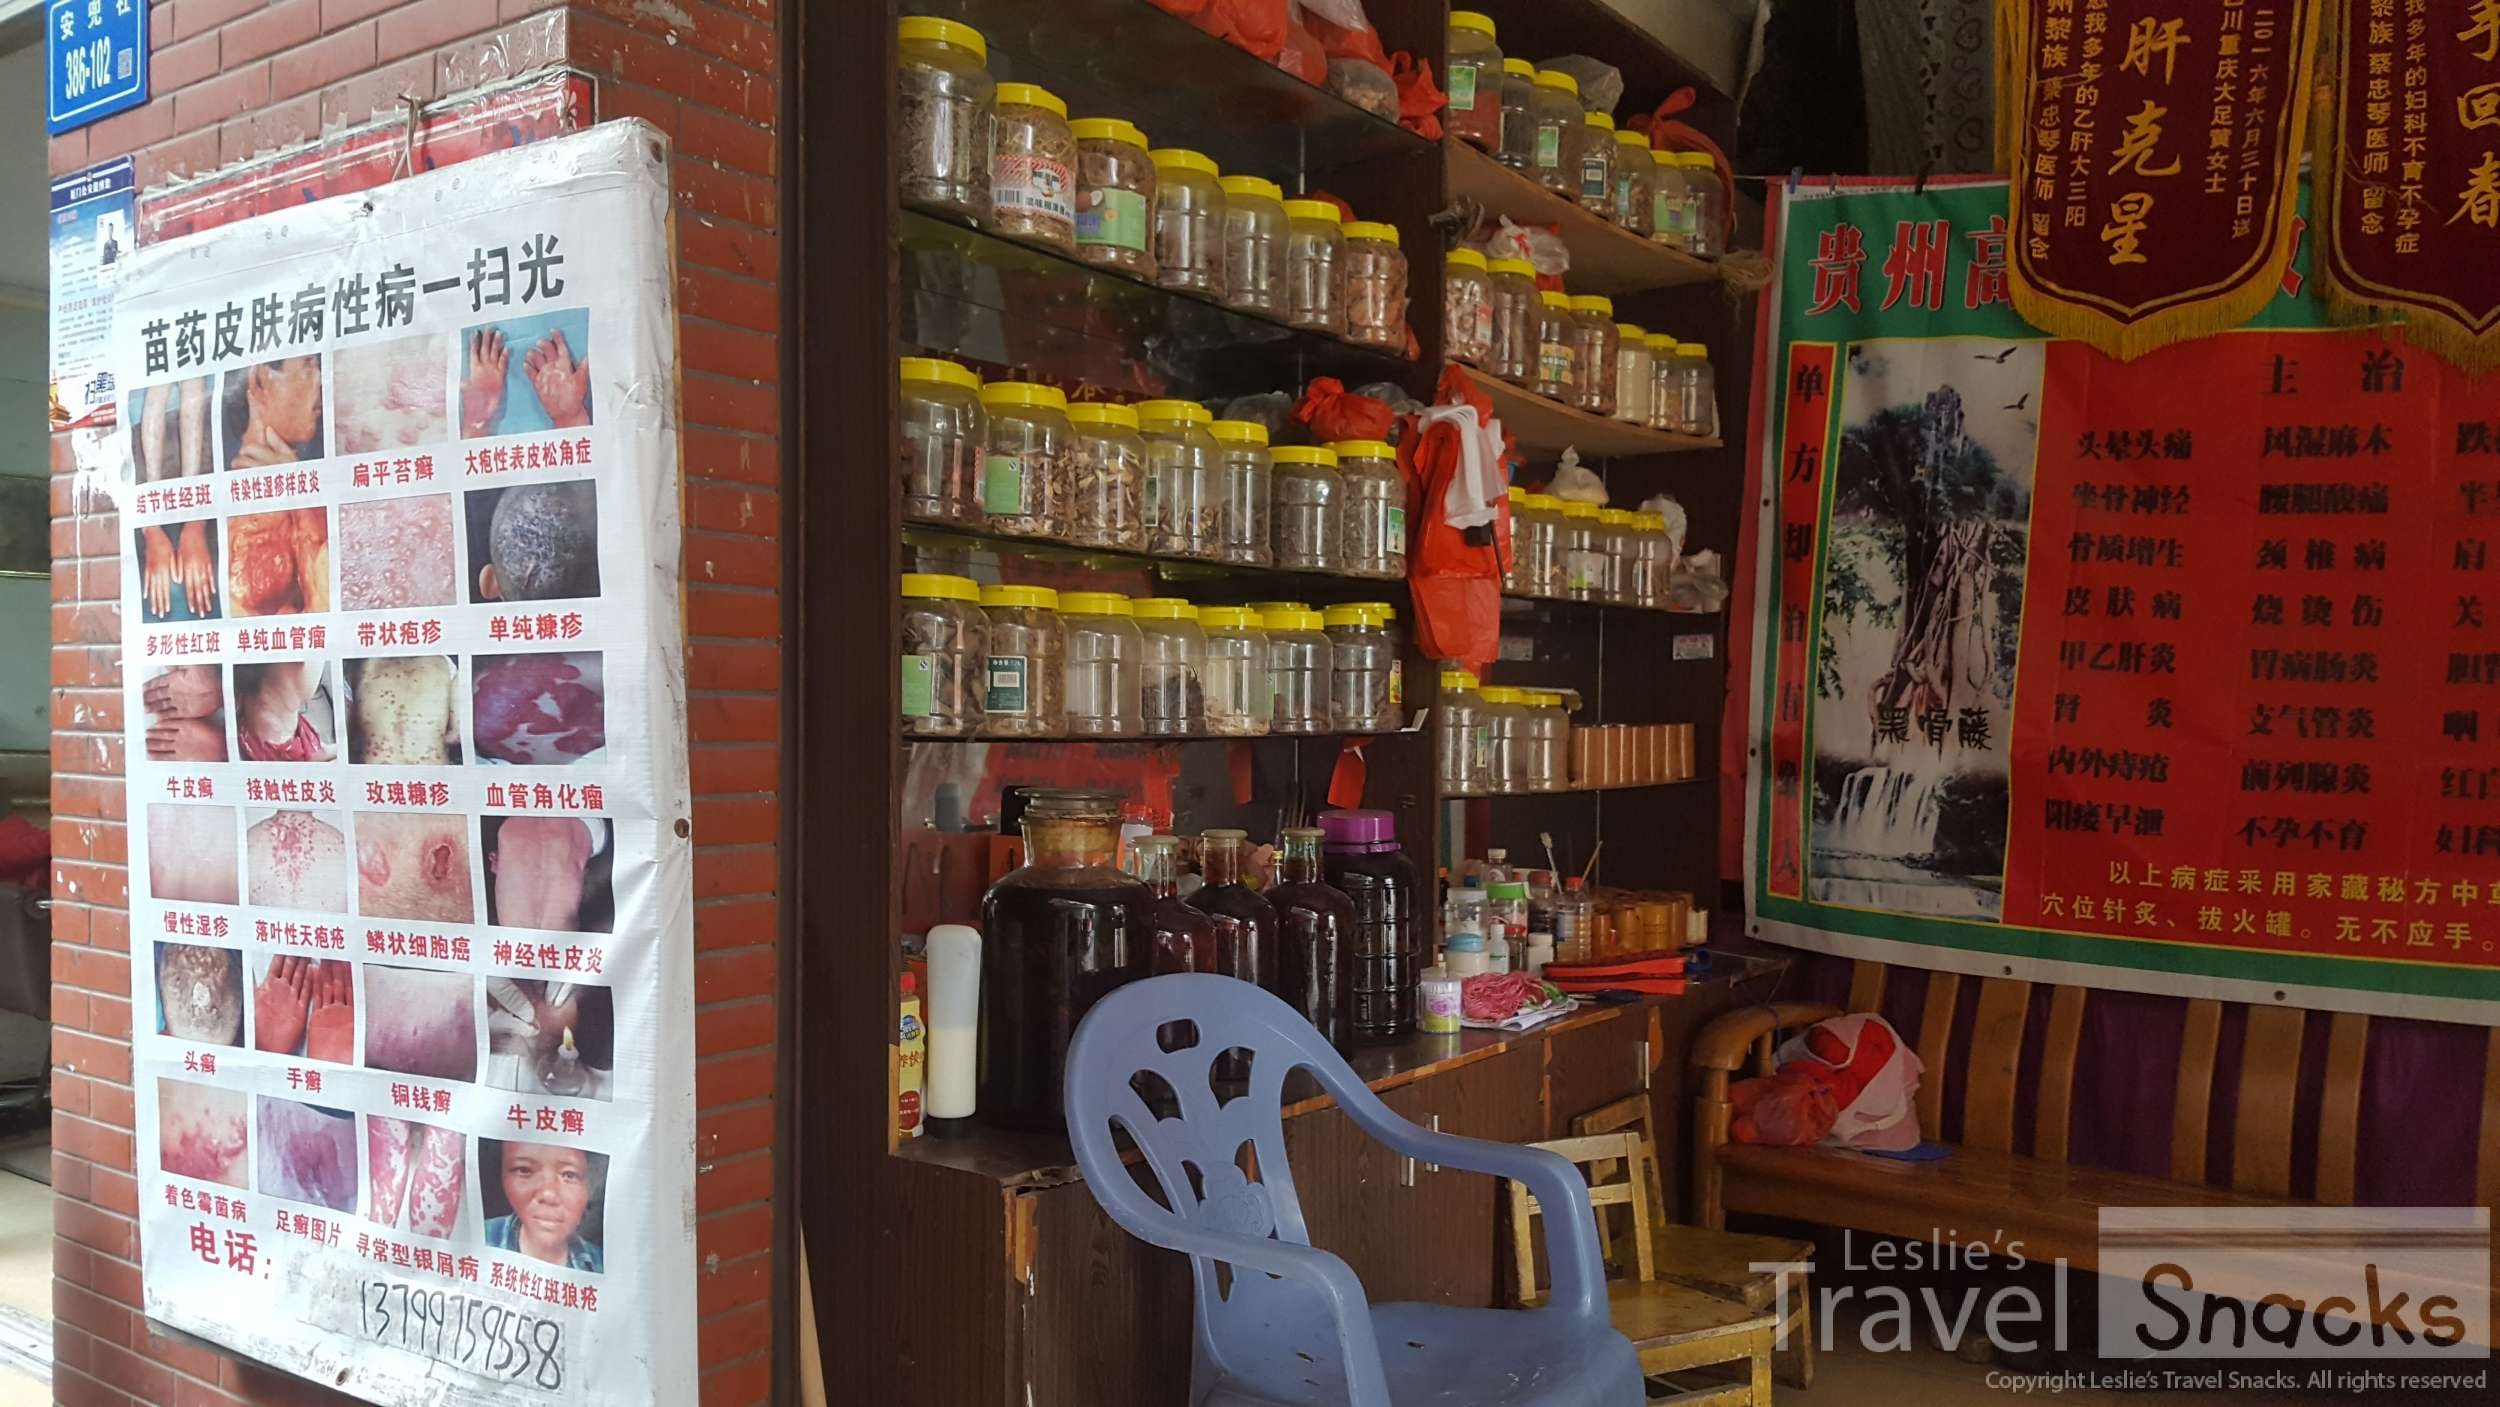 Chinese medicine shop - bottles and jars of god knows what.